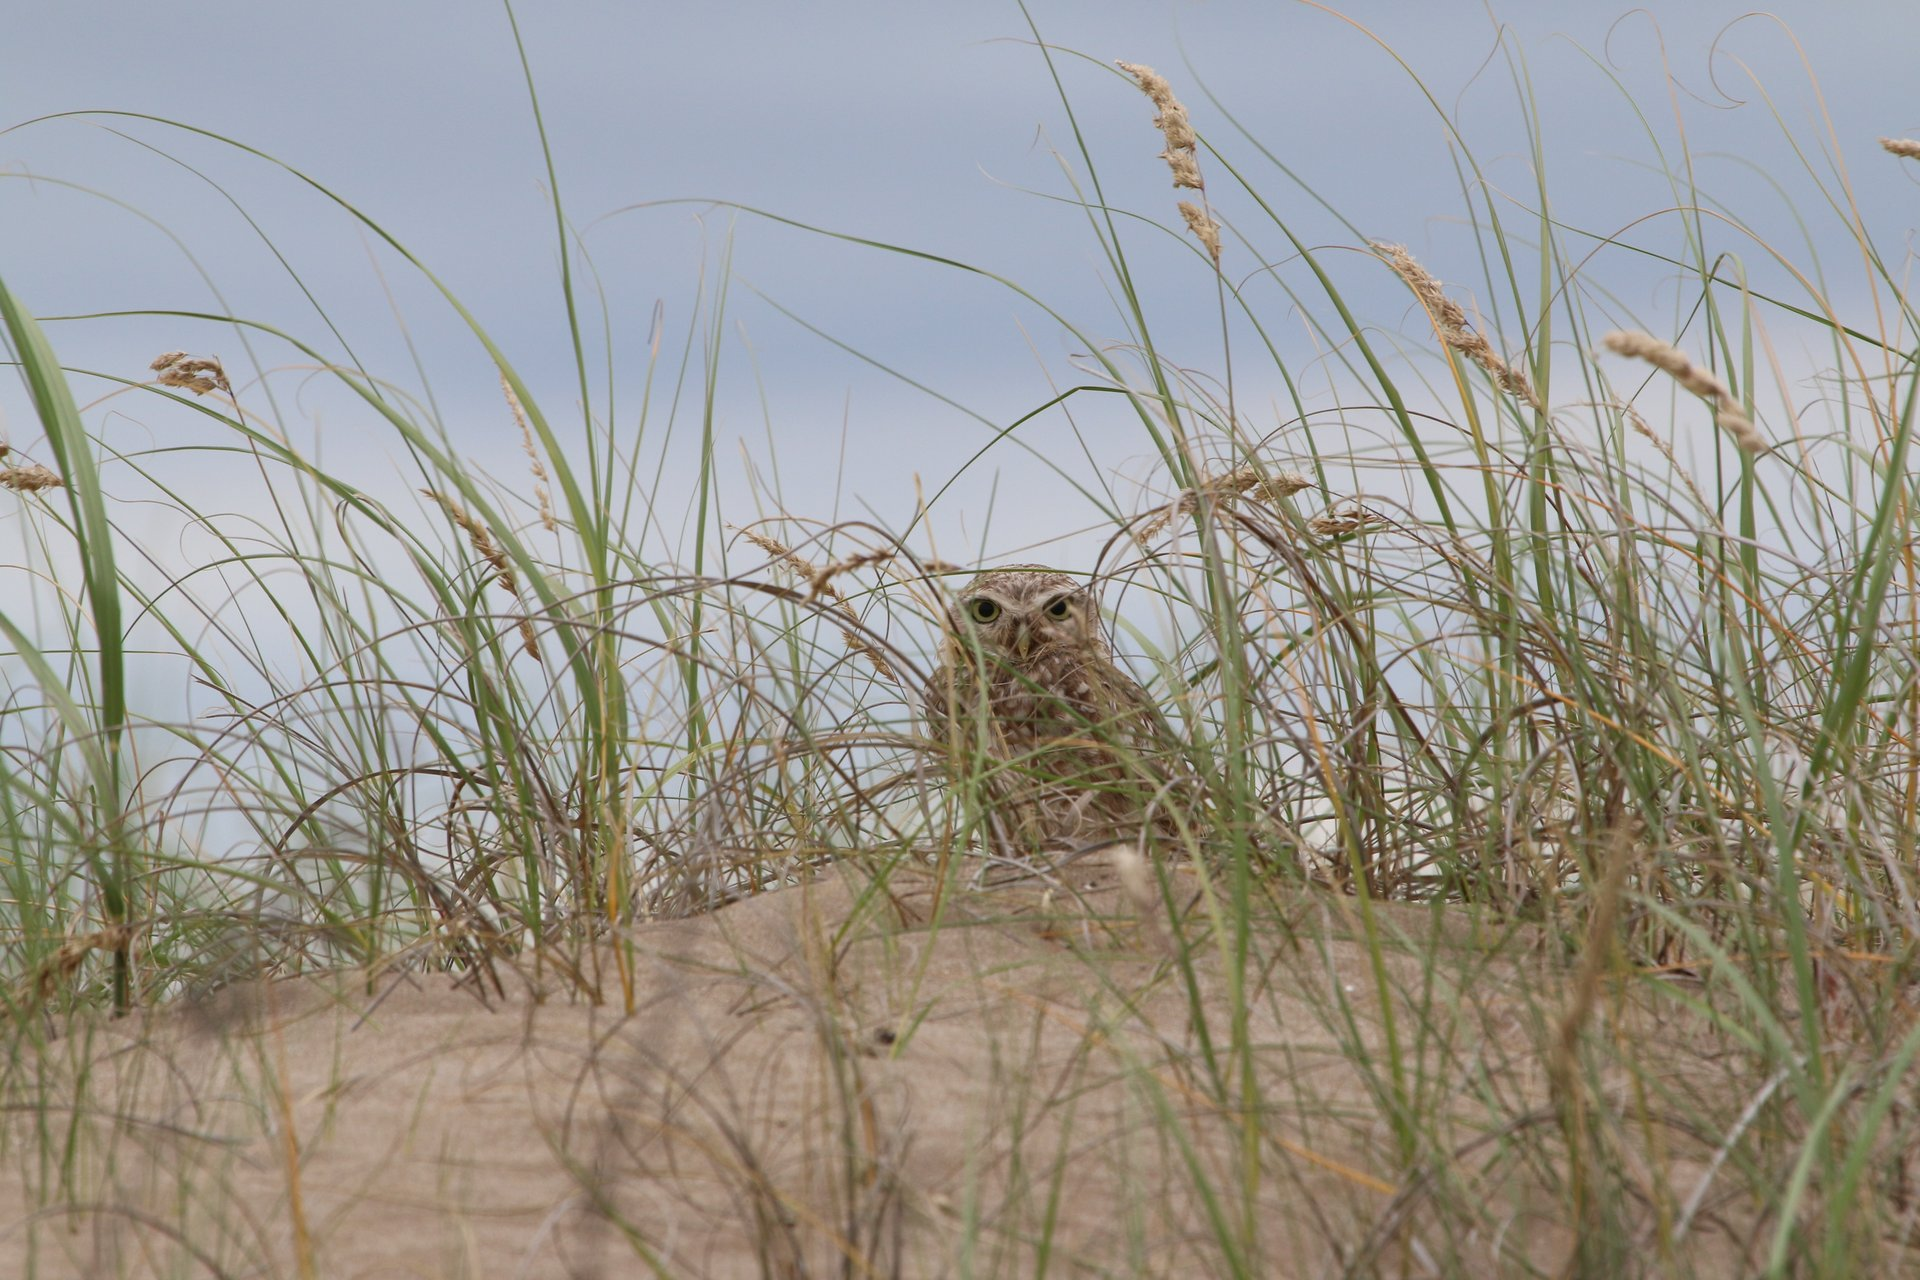 Best time for Burrowing Owl Nesting Season in Argentina 2020